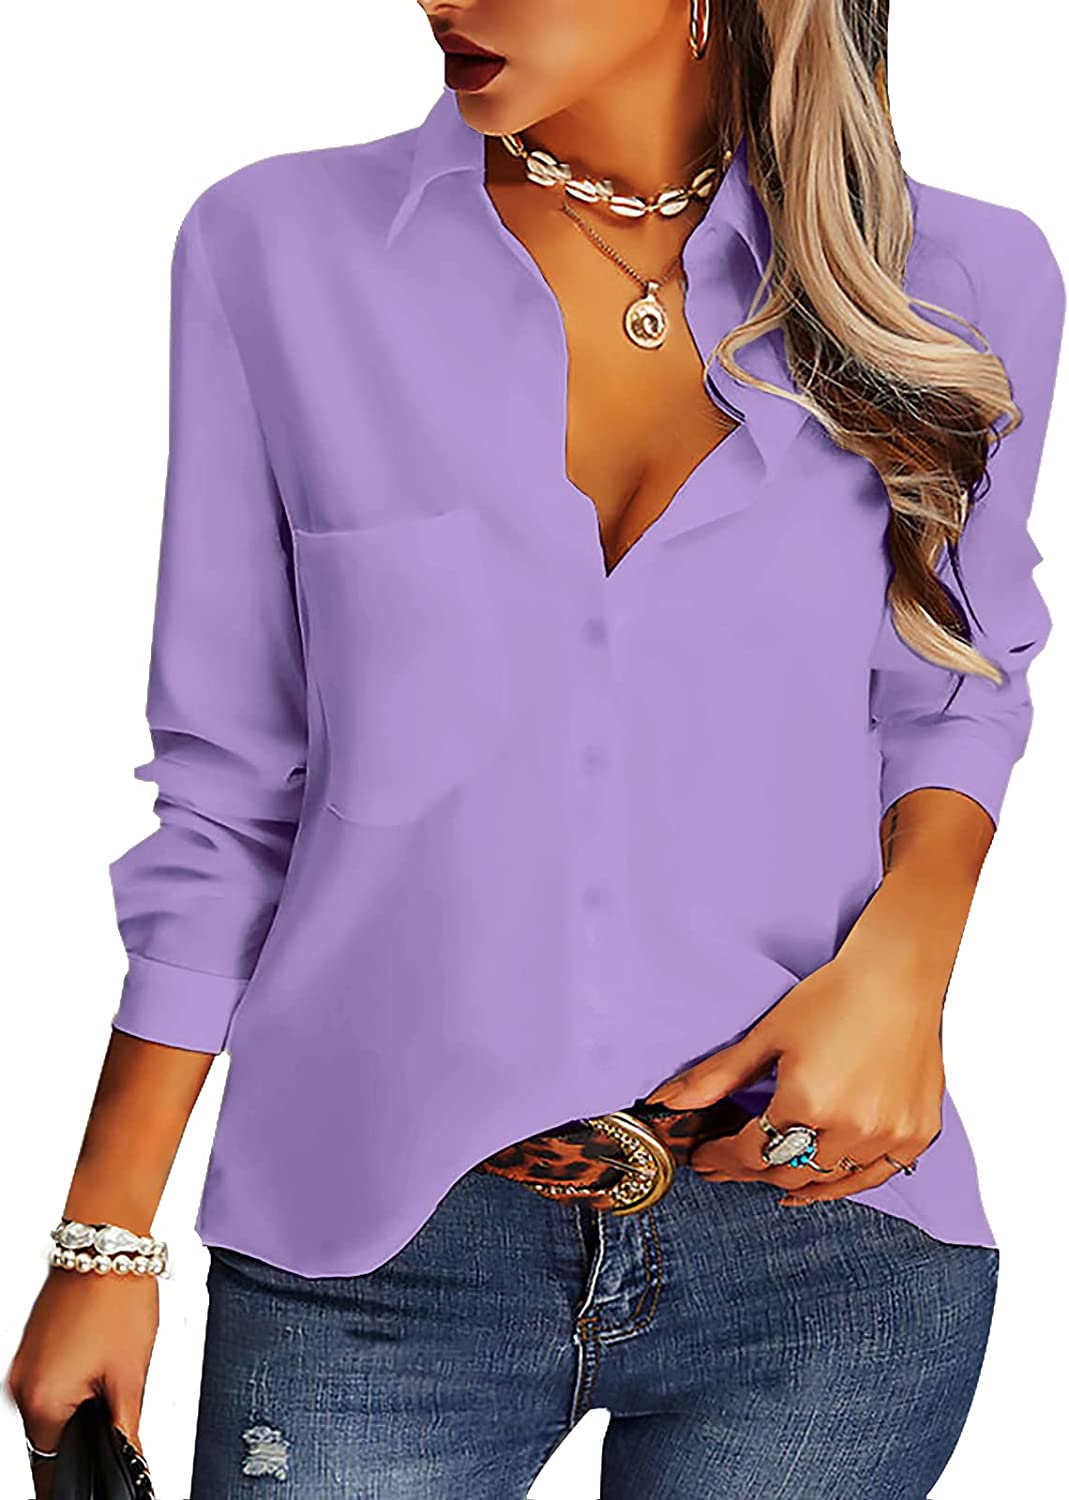 AISEW Womens Casual Button Down Shirts V Neck Chiffon Long Sleeve Collared Office Work Blouses Tops with Pocket